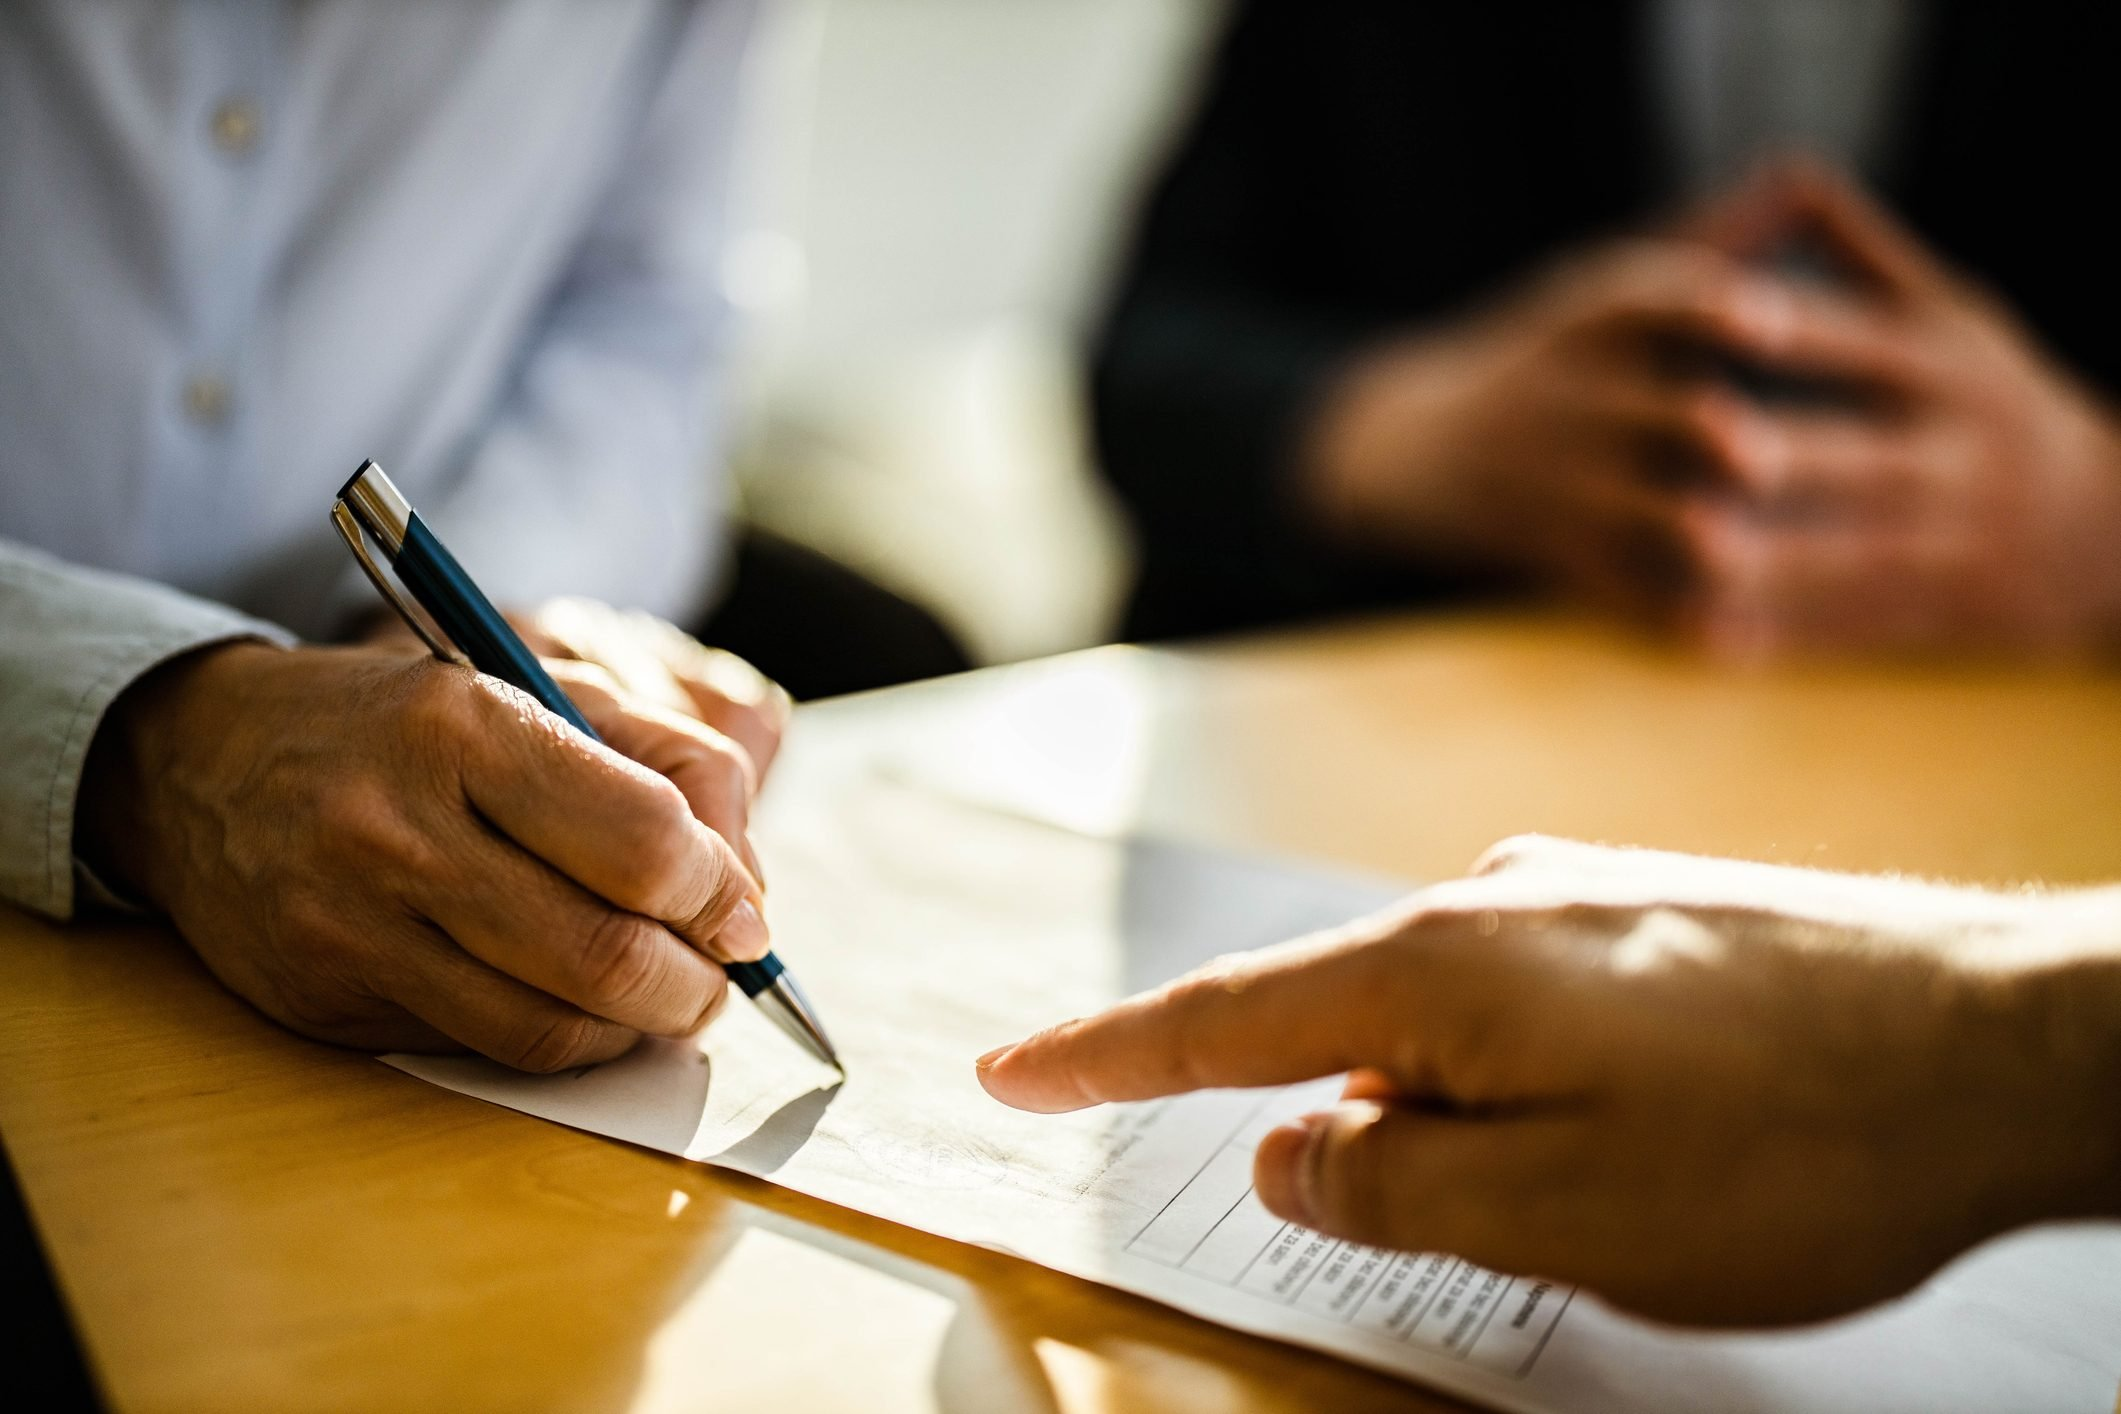 Close up of unrecognizable person signing a contract.